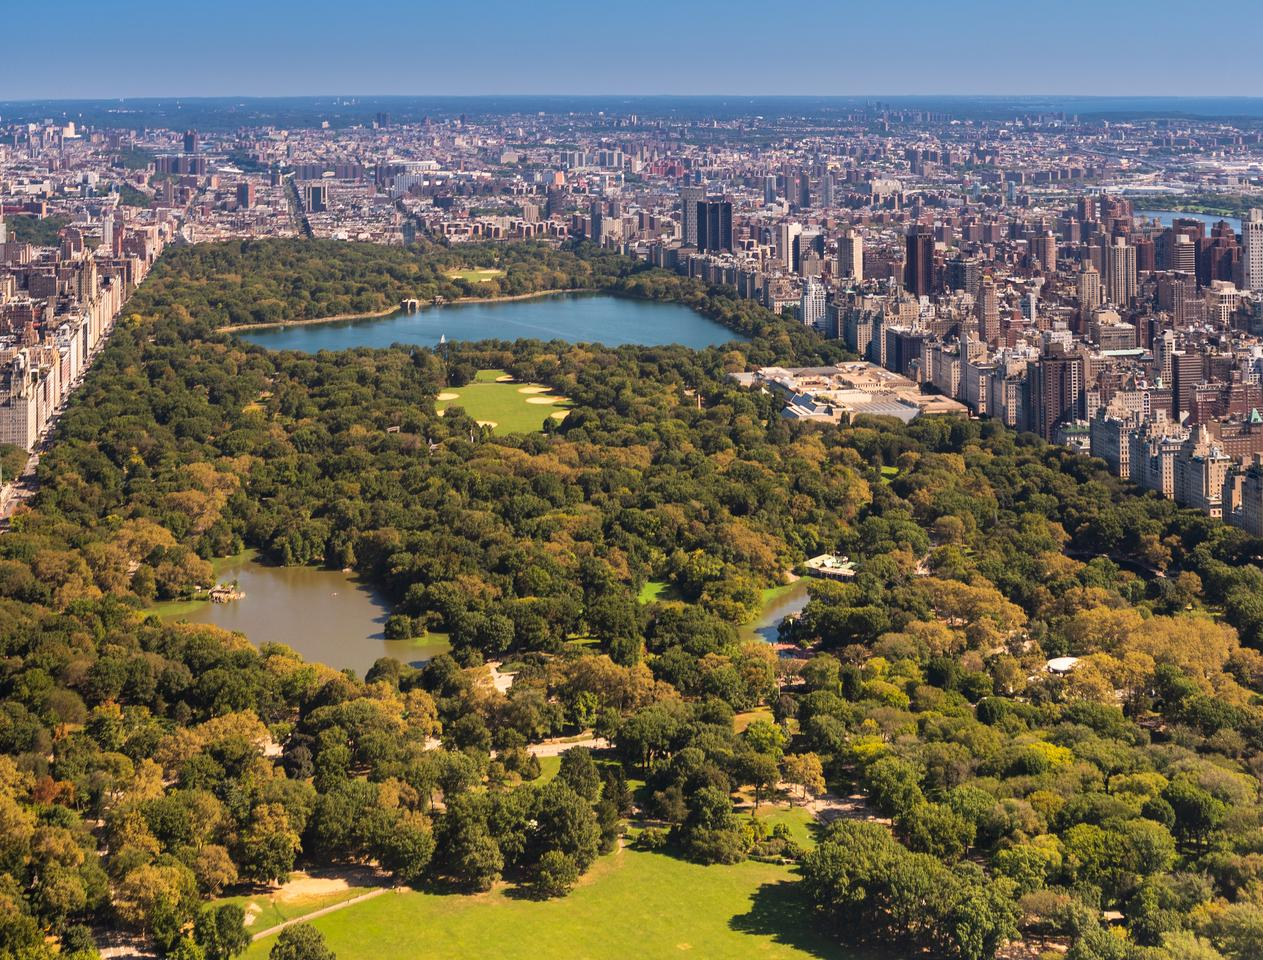 This is the kind of view that US$100 million will buy you in Central Park Tower